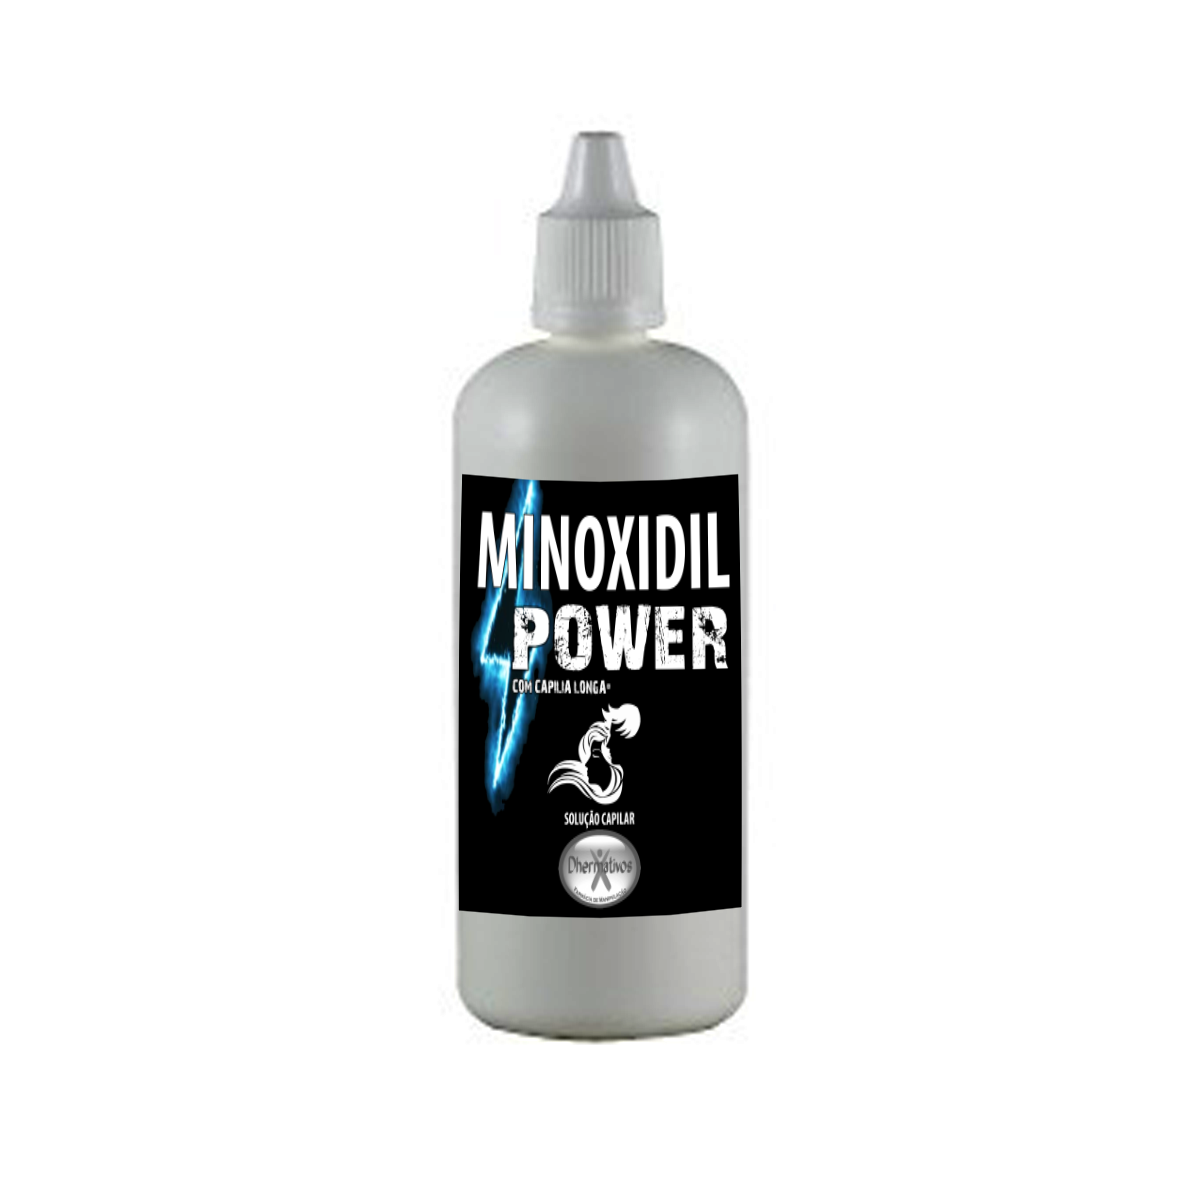 MInoxidil Power Capilar 100ml